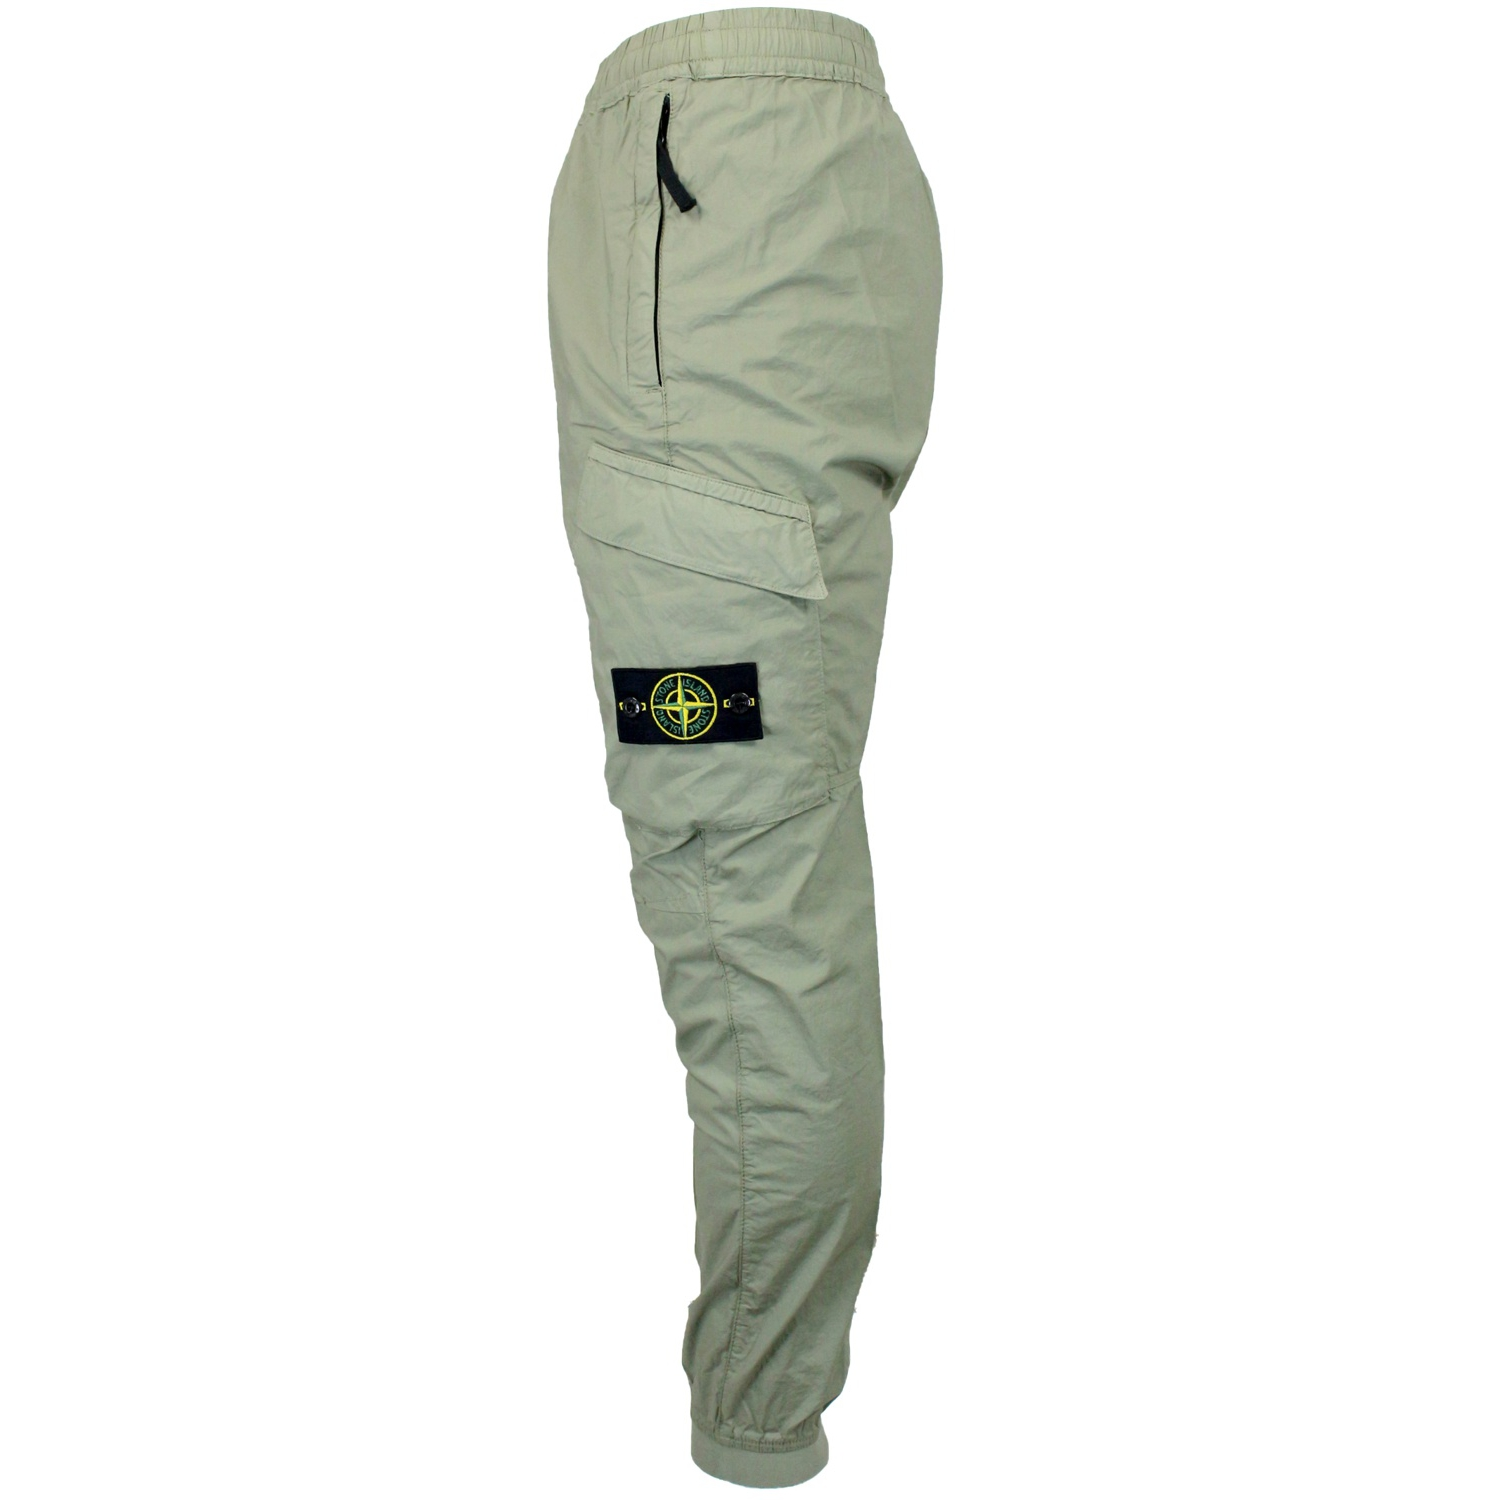 620319e7 Pants in stretch cotton and pocket Sage, Stone Island 532203 ...